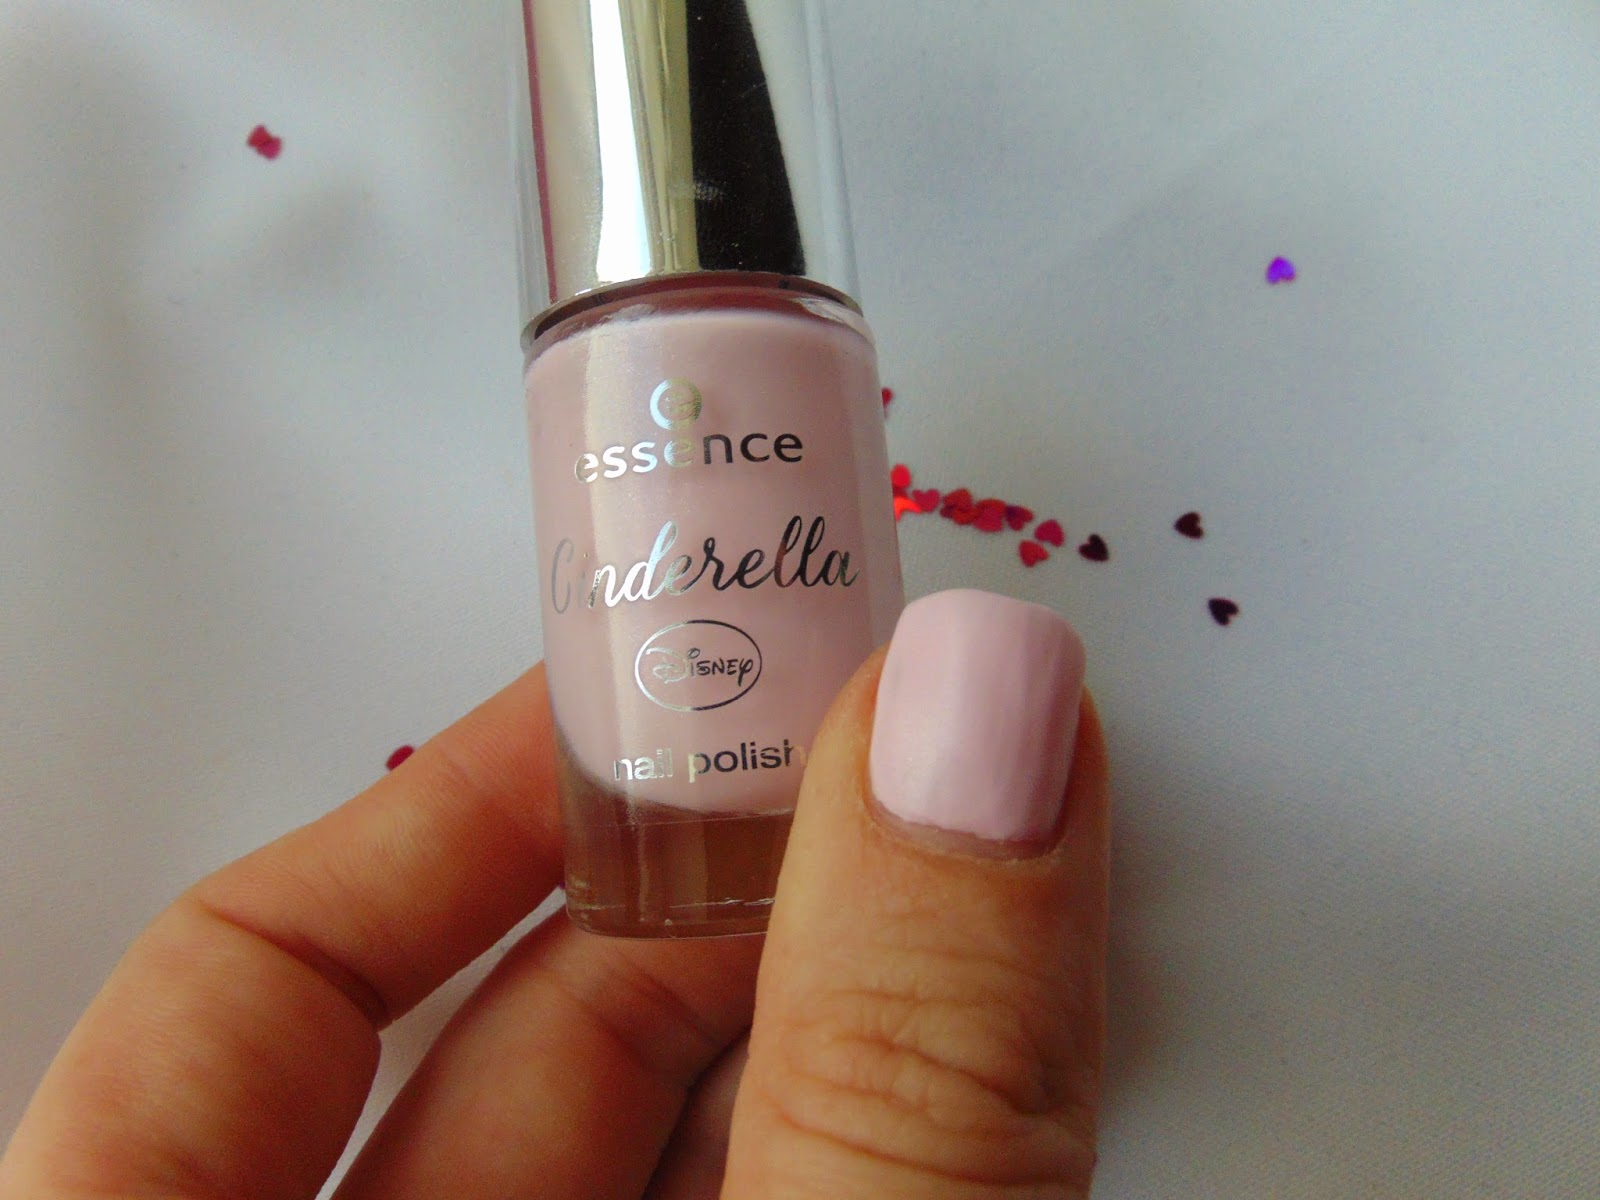 essence cinderella – nail polish Sing sweet Nightingale Swatch - www.annitschkasblog.de